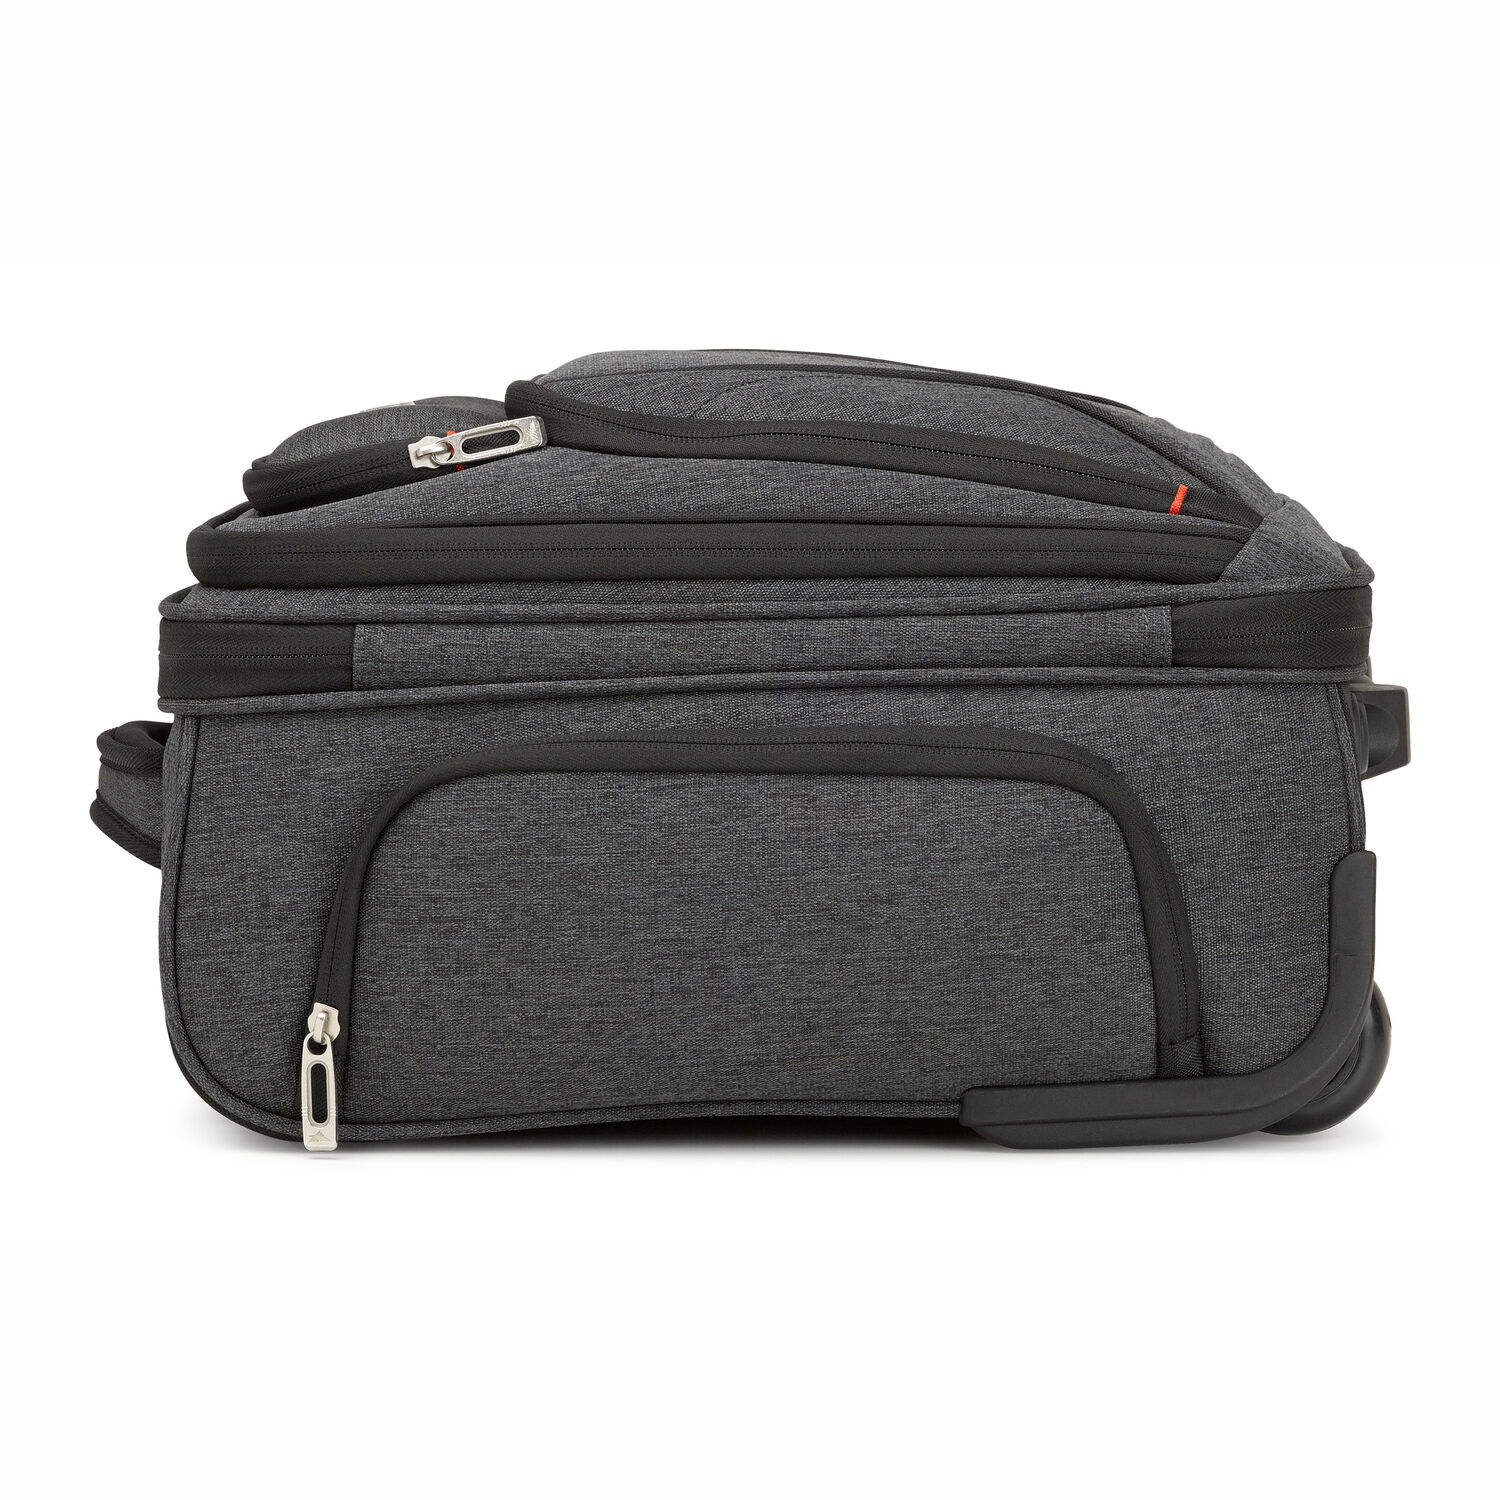 f3f3f7da3ce High Sierra Endeavor Wheeled Underseat Carry-On in the color Black.